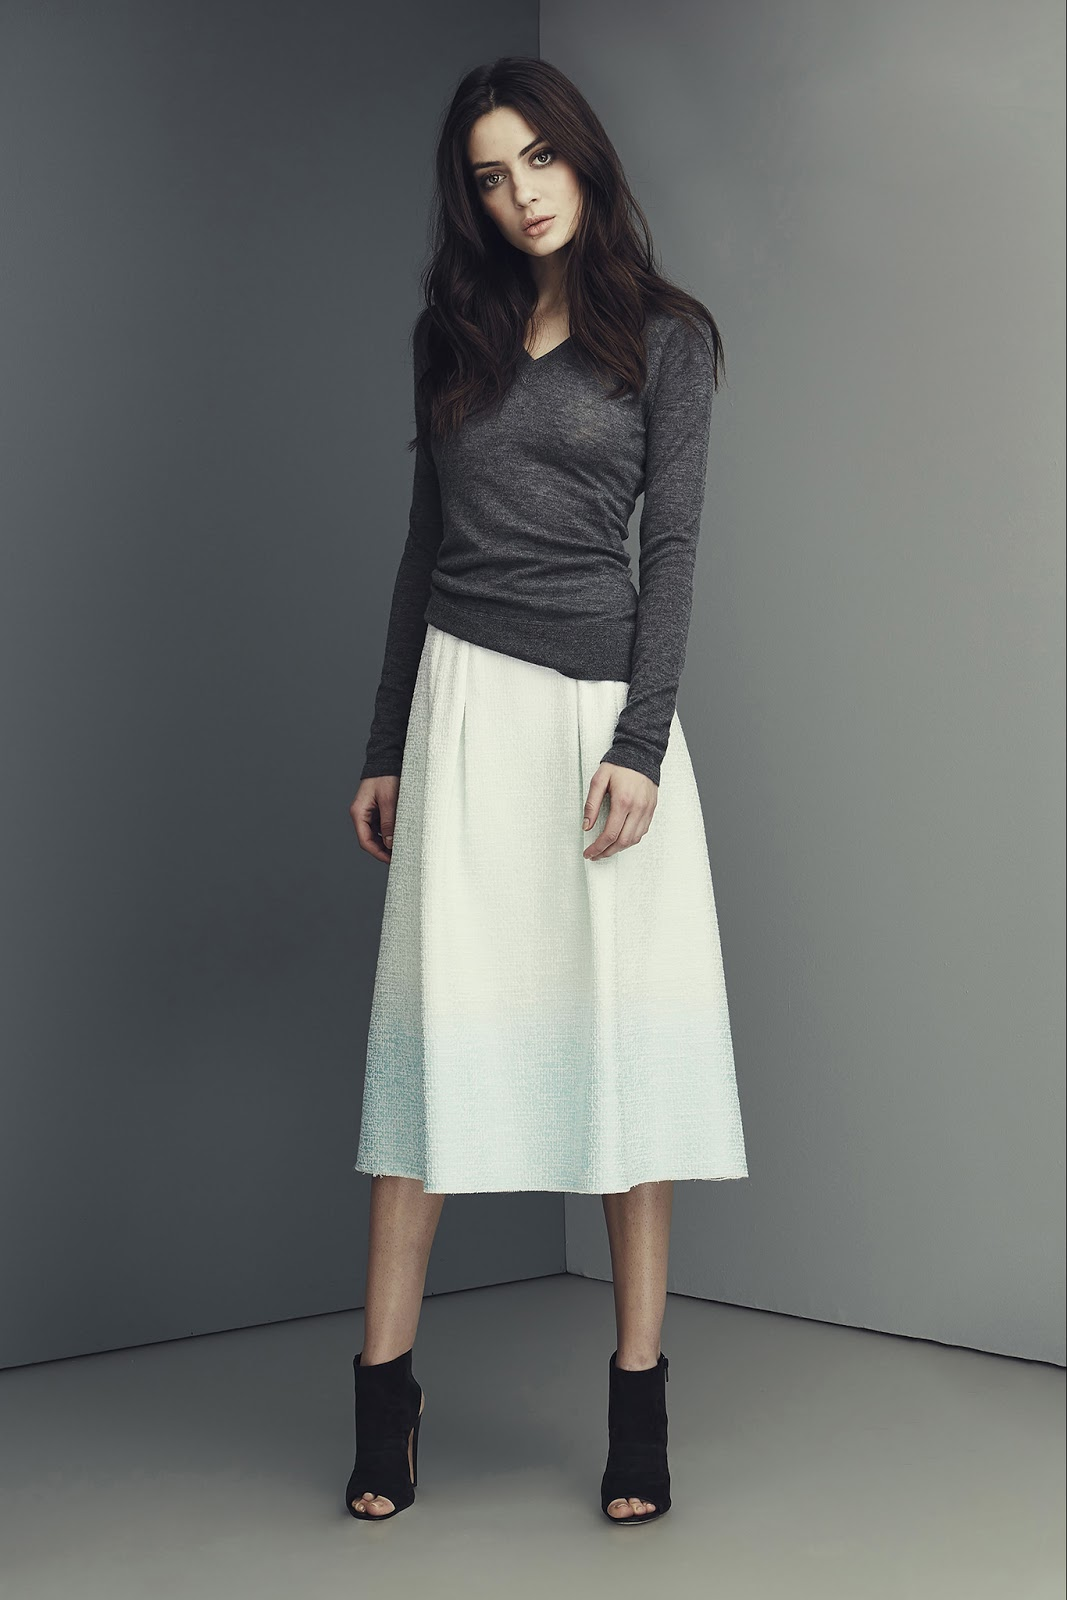 transitional style inspiration from the catwalk / how to wear midi skirt in autumn / Elie Tahari / via fashionedbylove.co.uk / british fashion & style blog